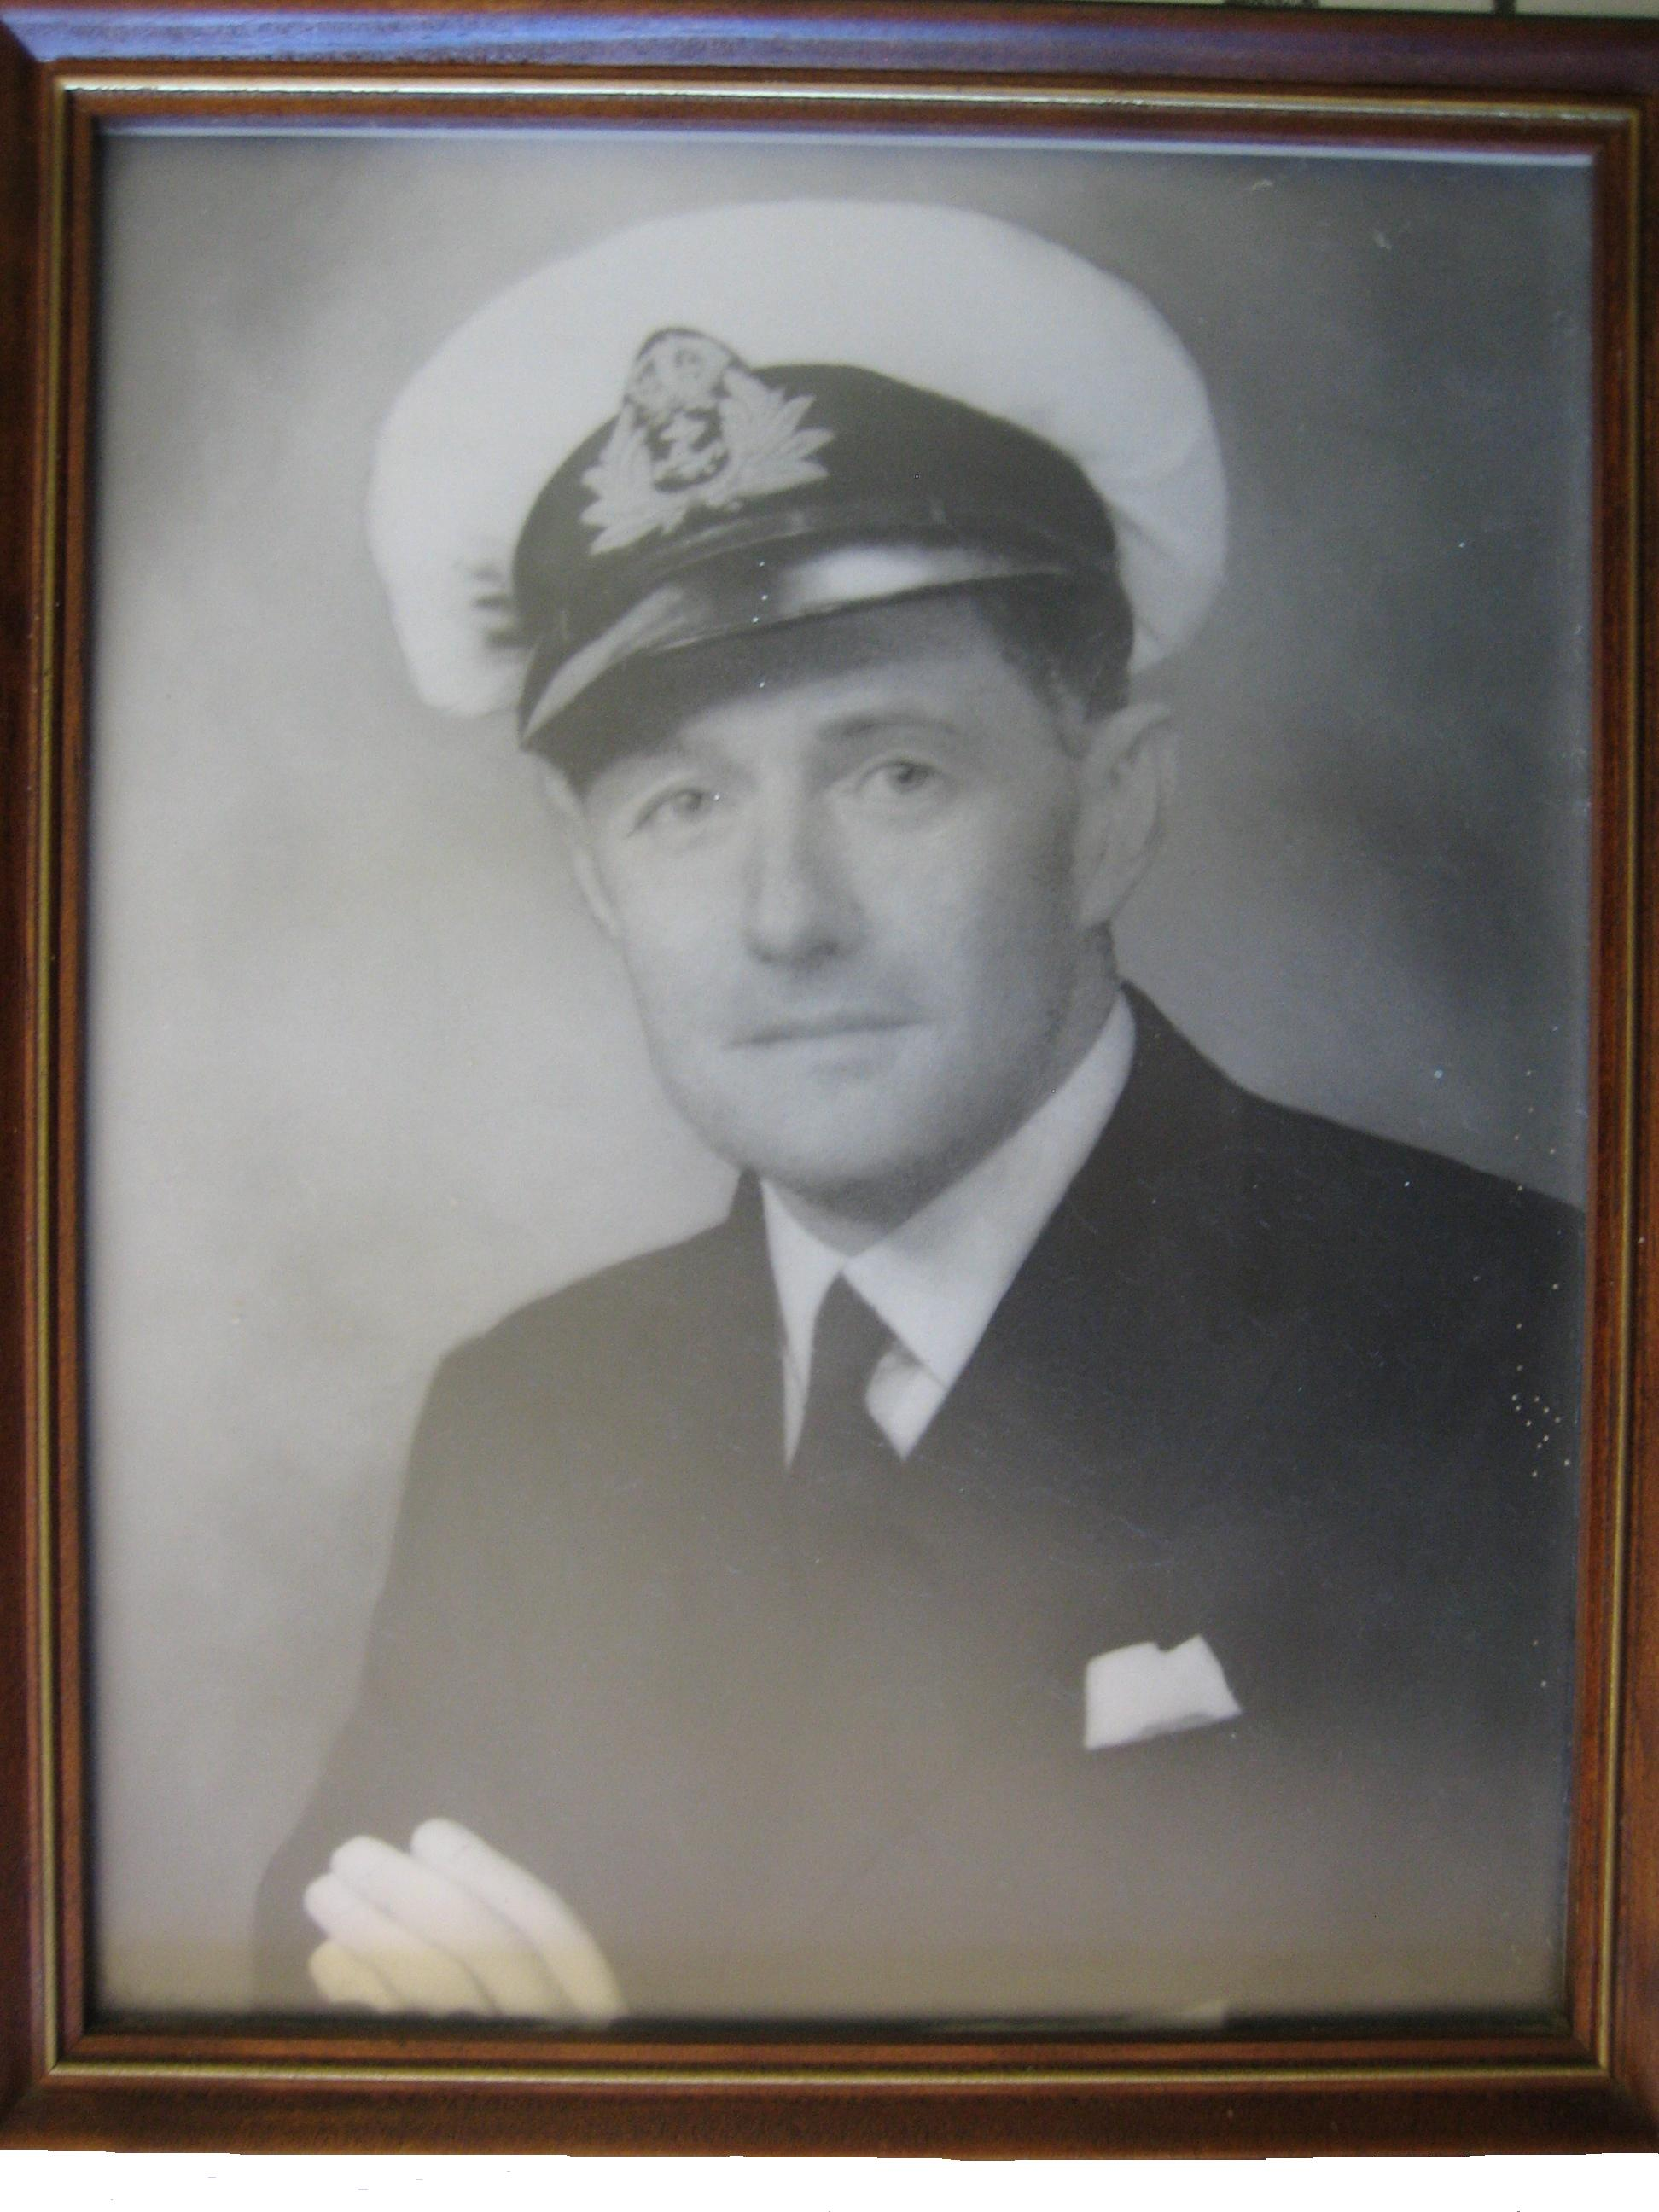 Edward Tracey Fletcher Millett, 1906-1989